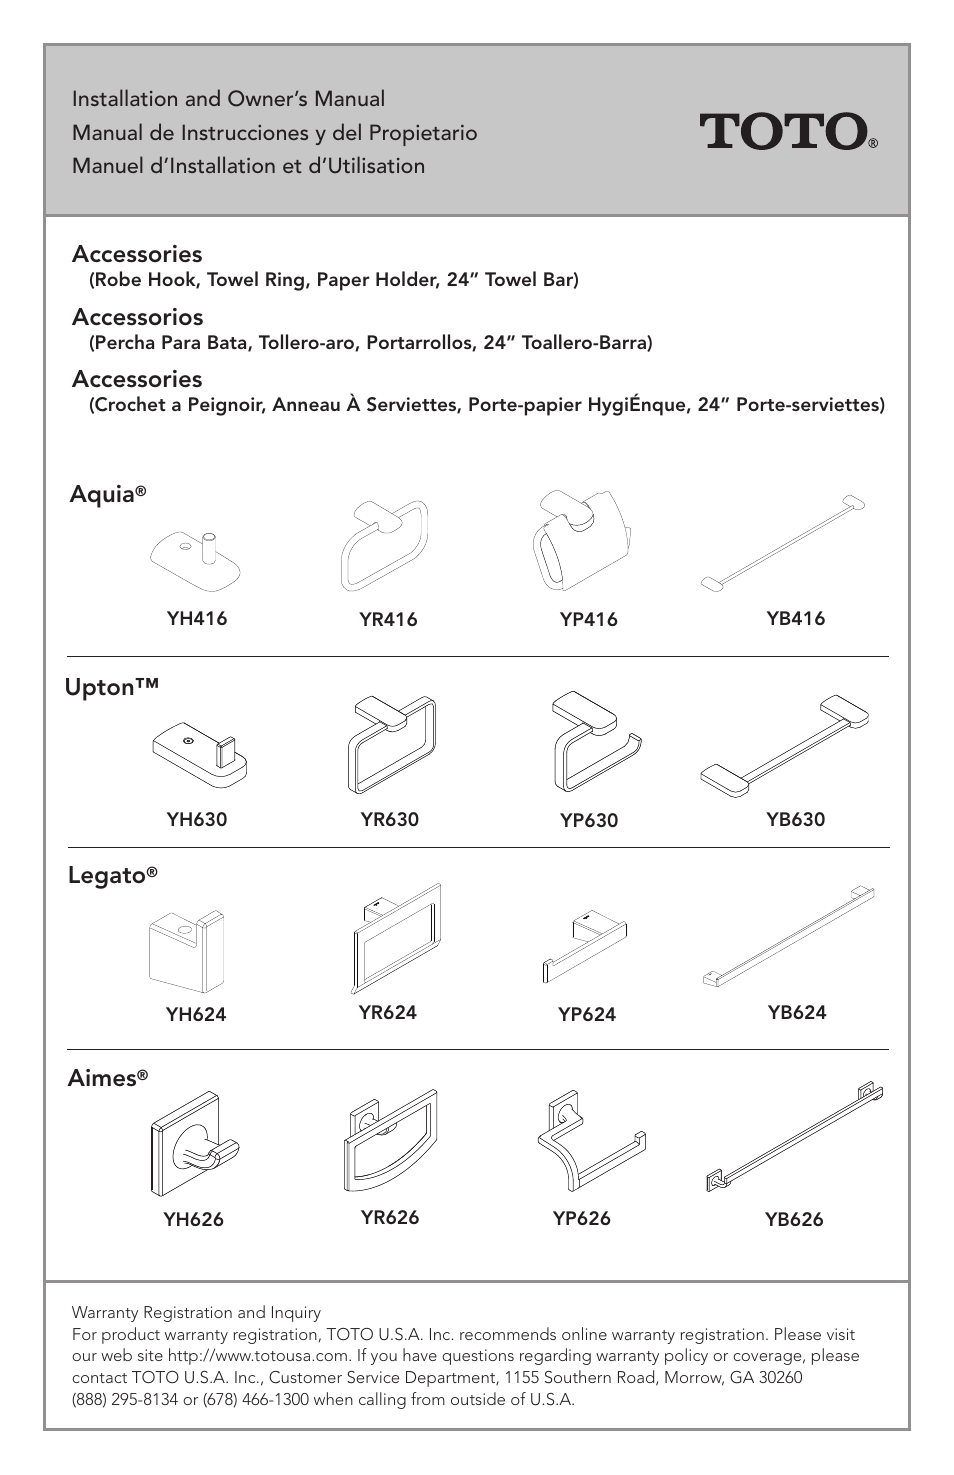 Factory Direct Hardware Toto YH416 Aquia User Manual | 11 pages ...